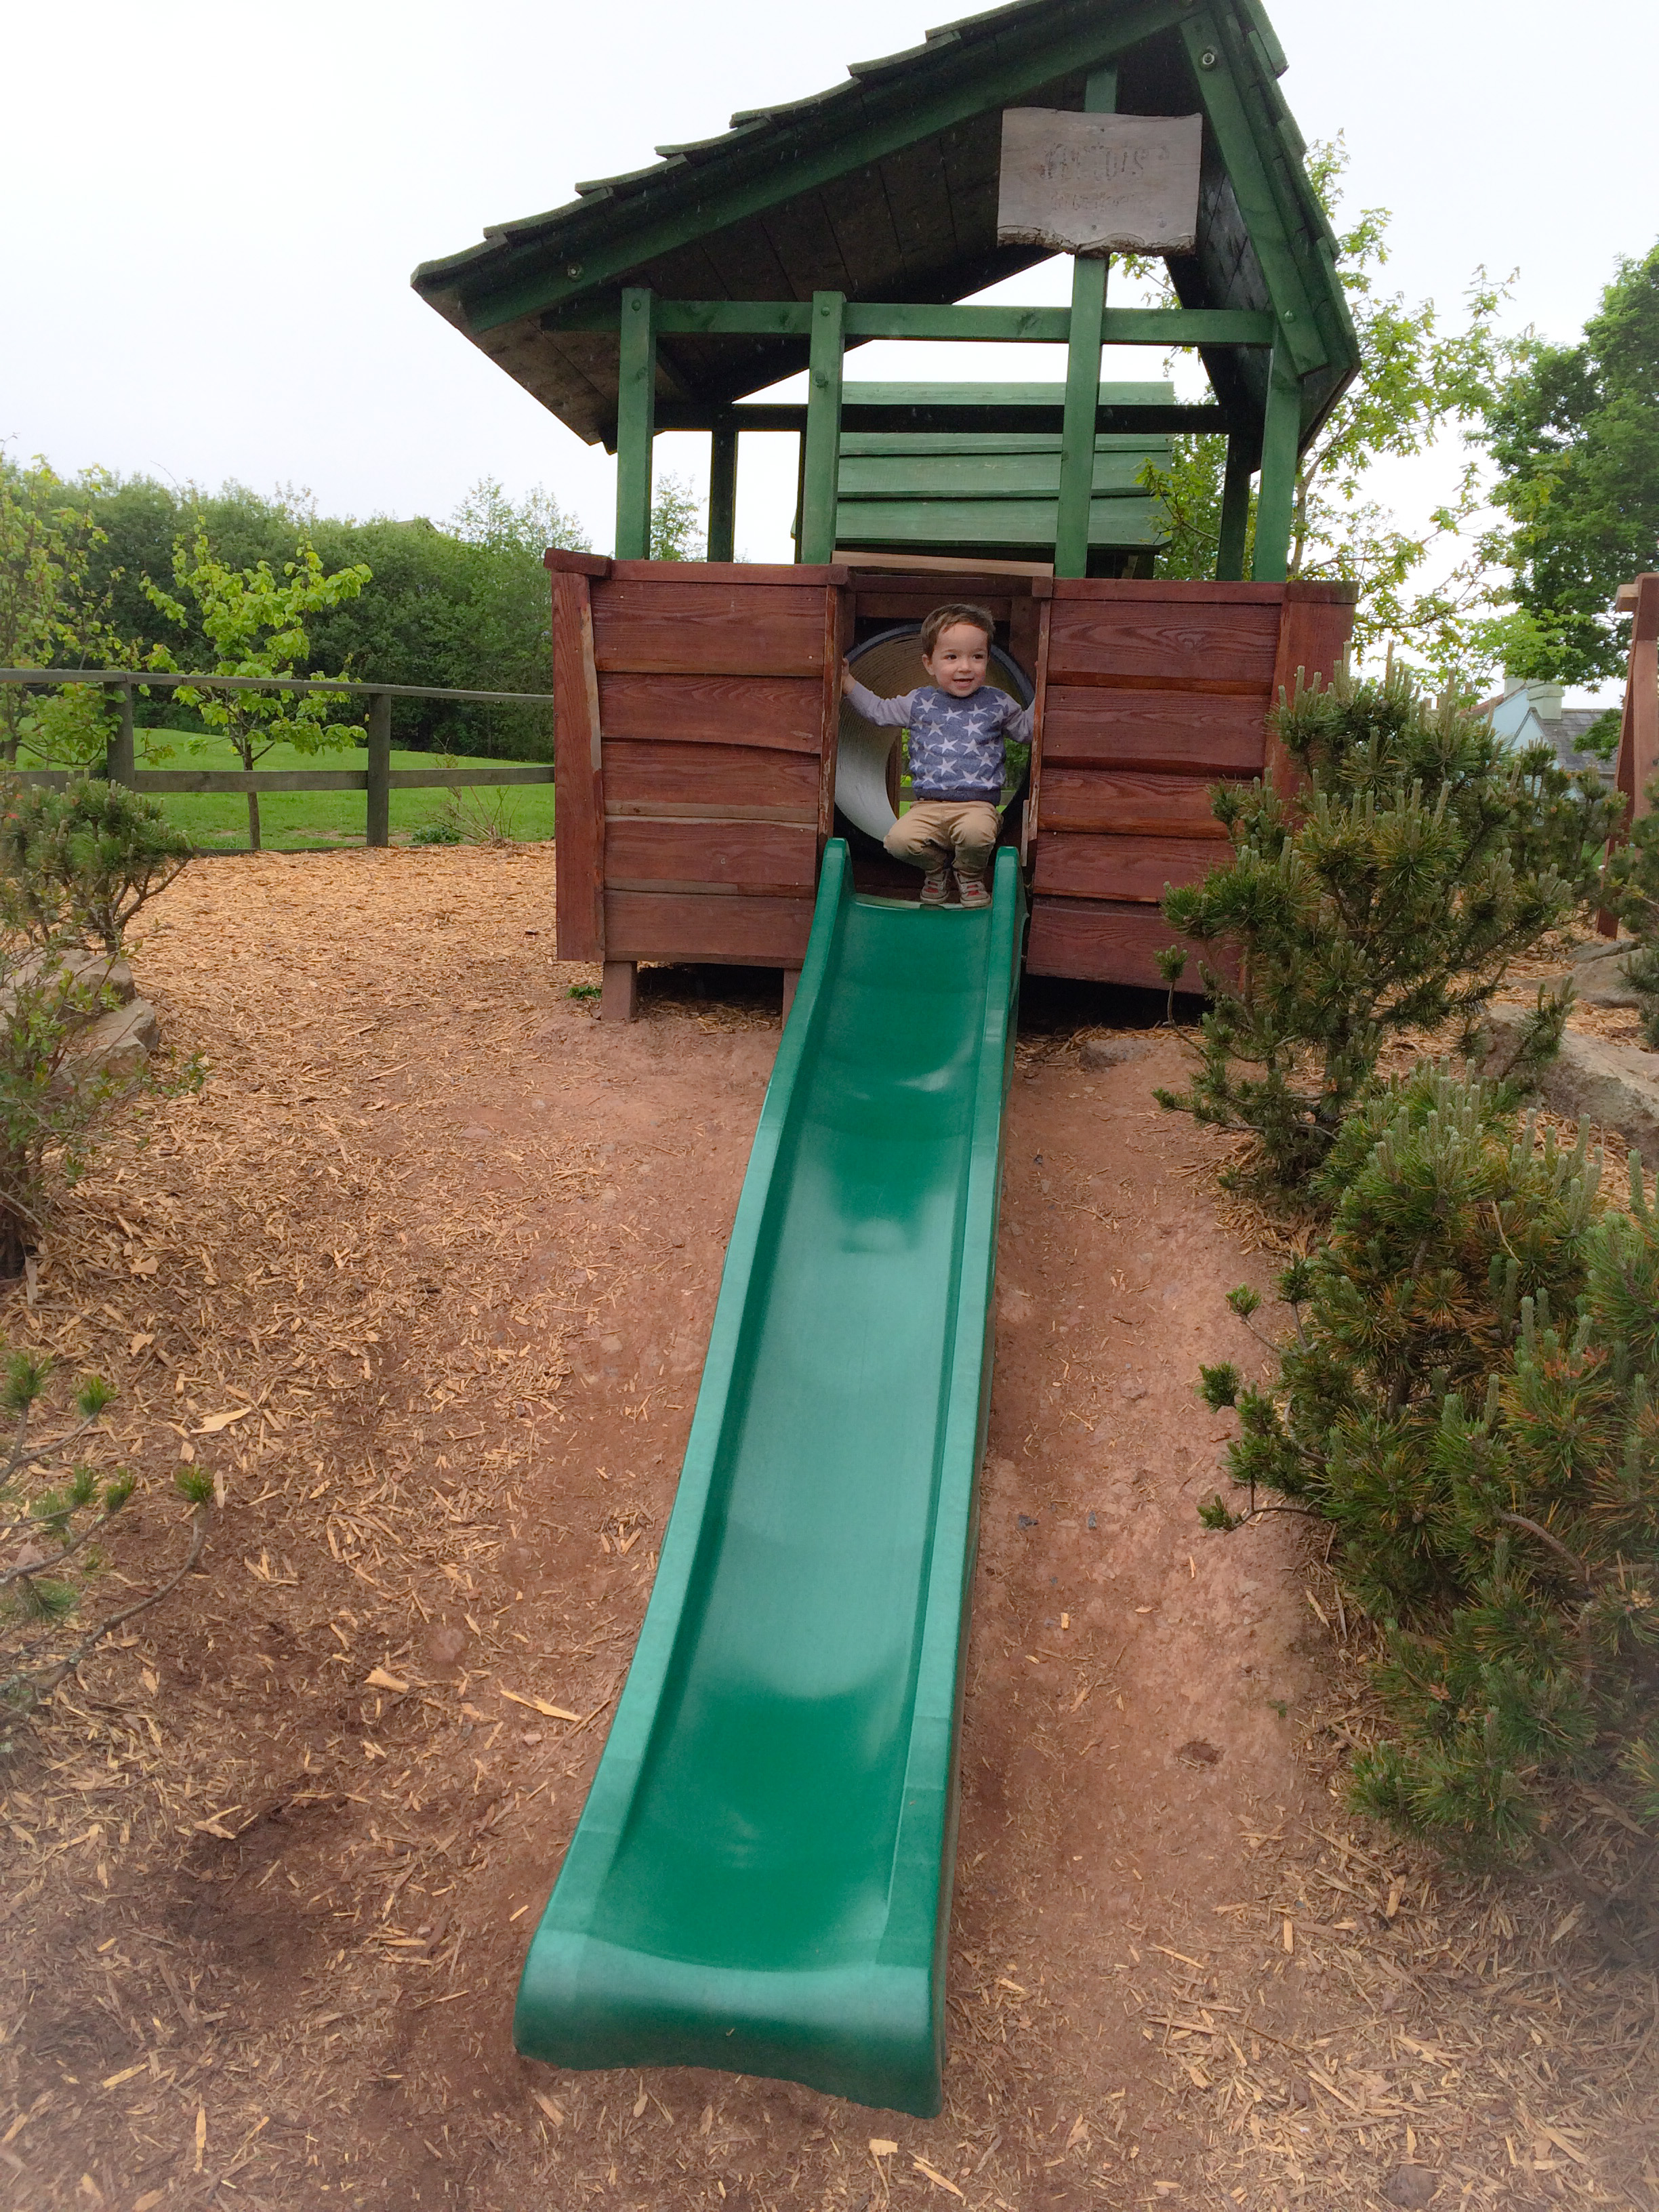 Bluestone Wales - Village play area.jpg